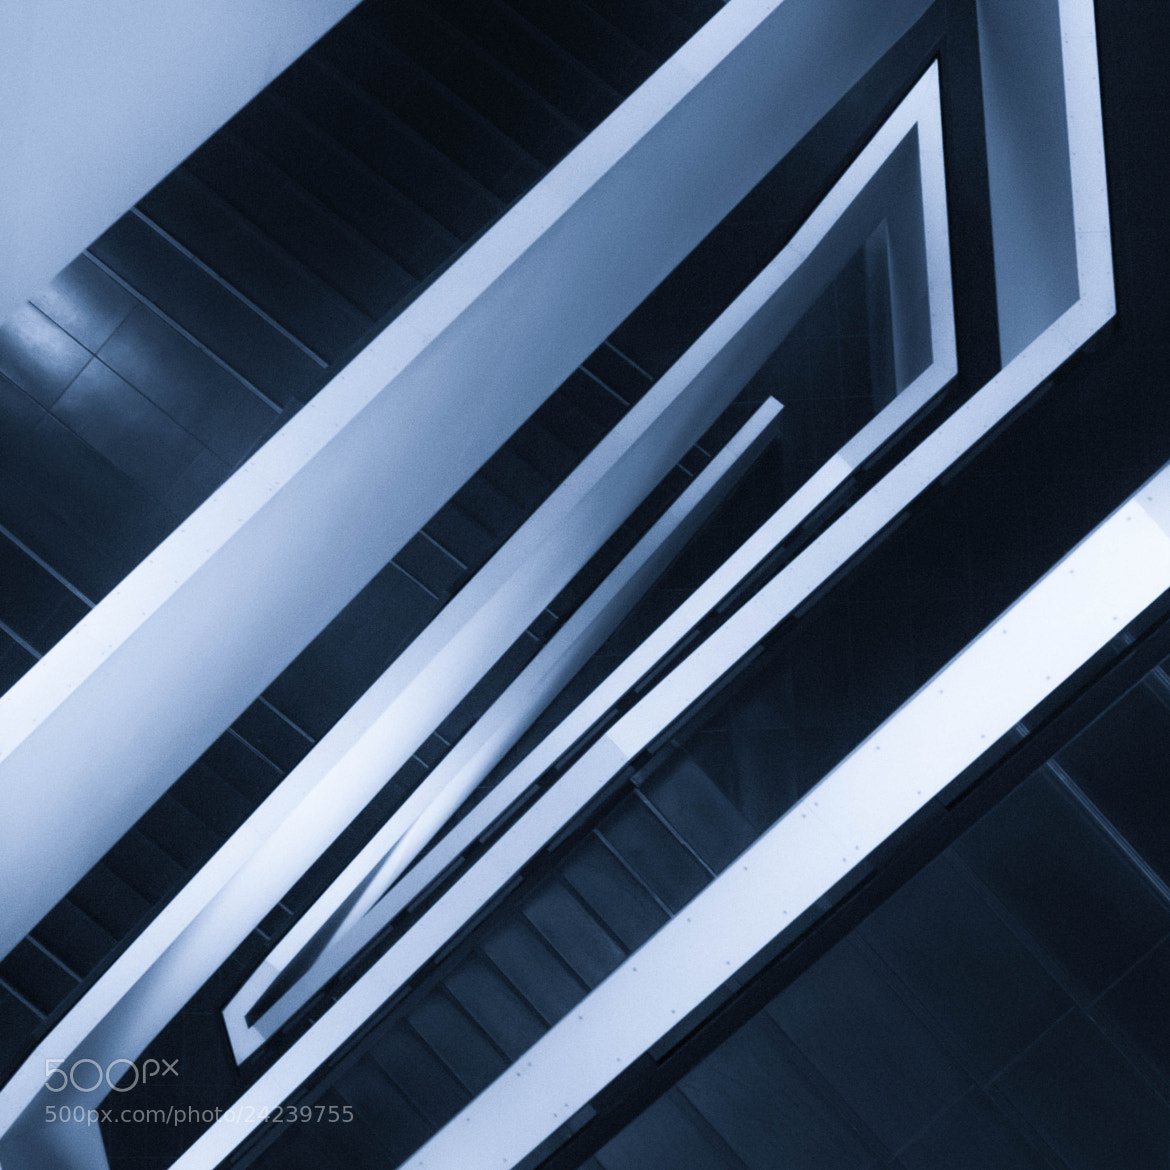 Photograph ROM Stairwell II by Ash Furrow on 500px